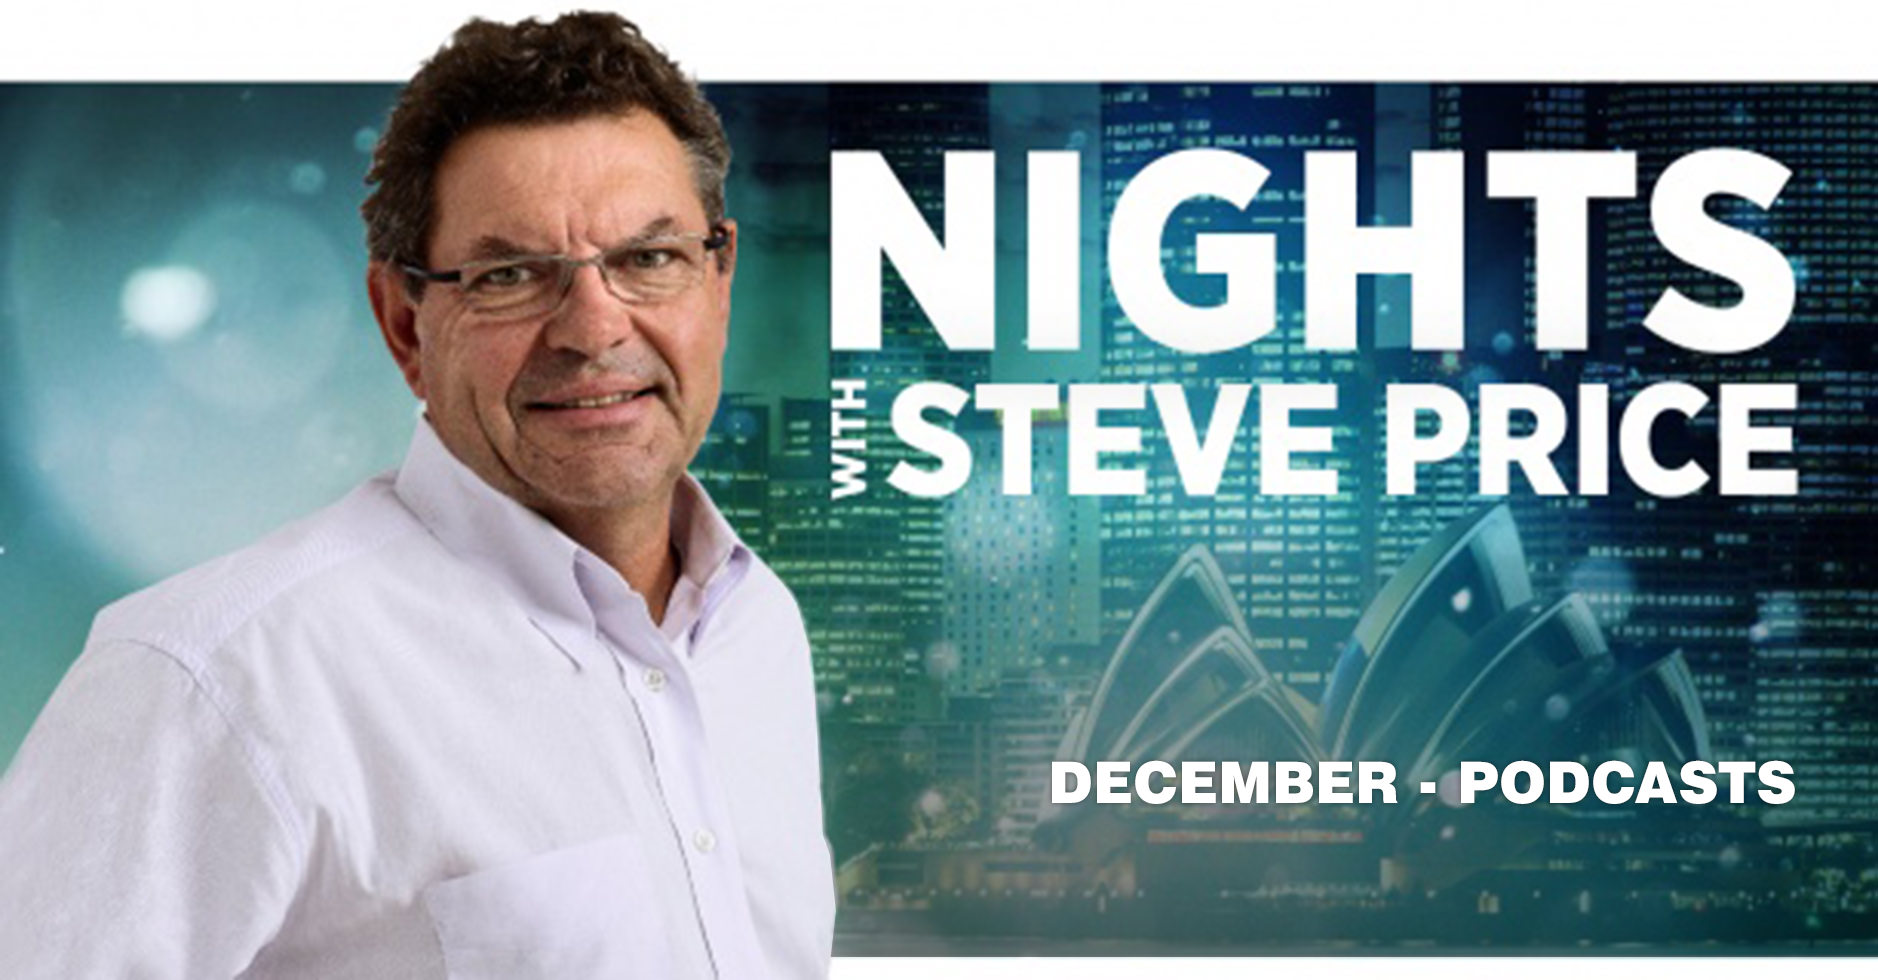 Nights StevePrice Hero DEC The Informed Investor: February 2018 Podcasts